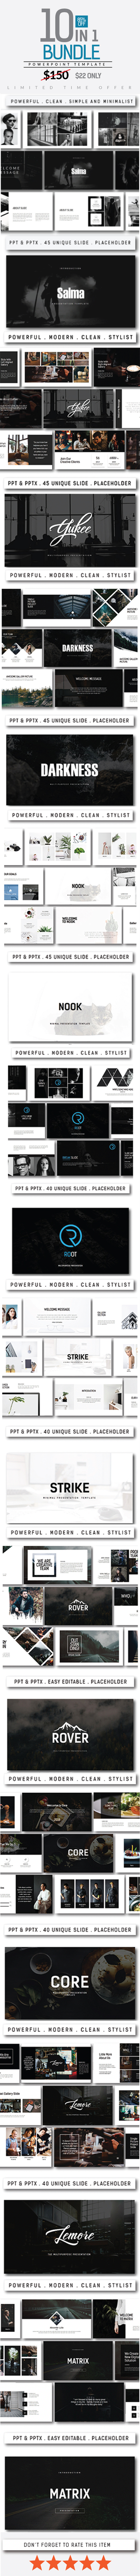 Bundle 10 in 1 Powerpoint Template - PowerPoint Templates Presentation Templates